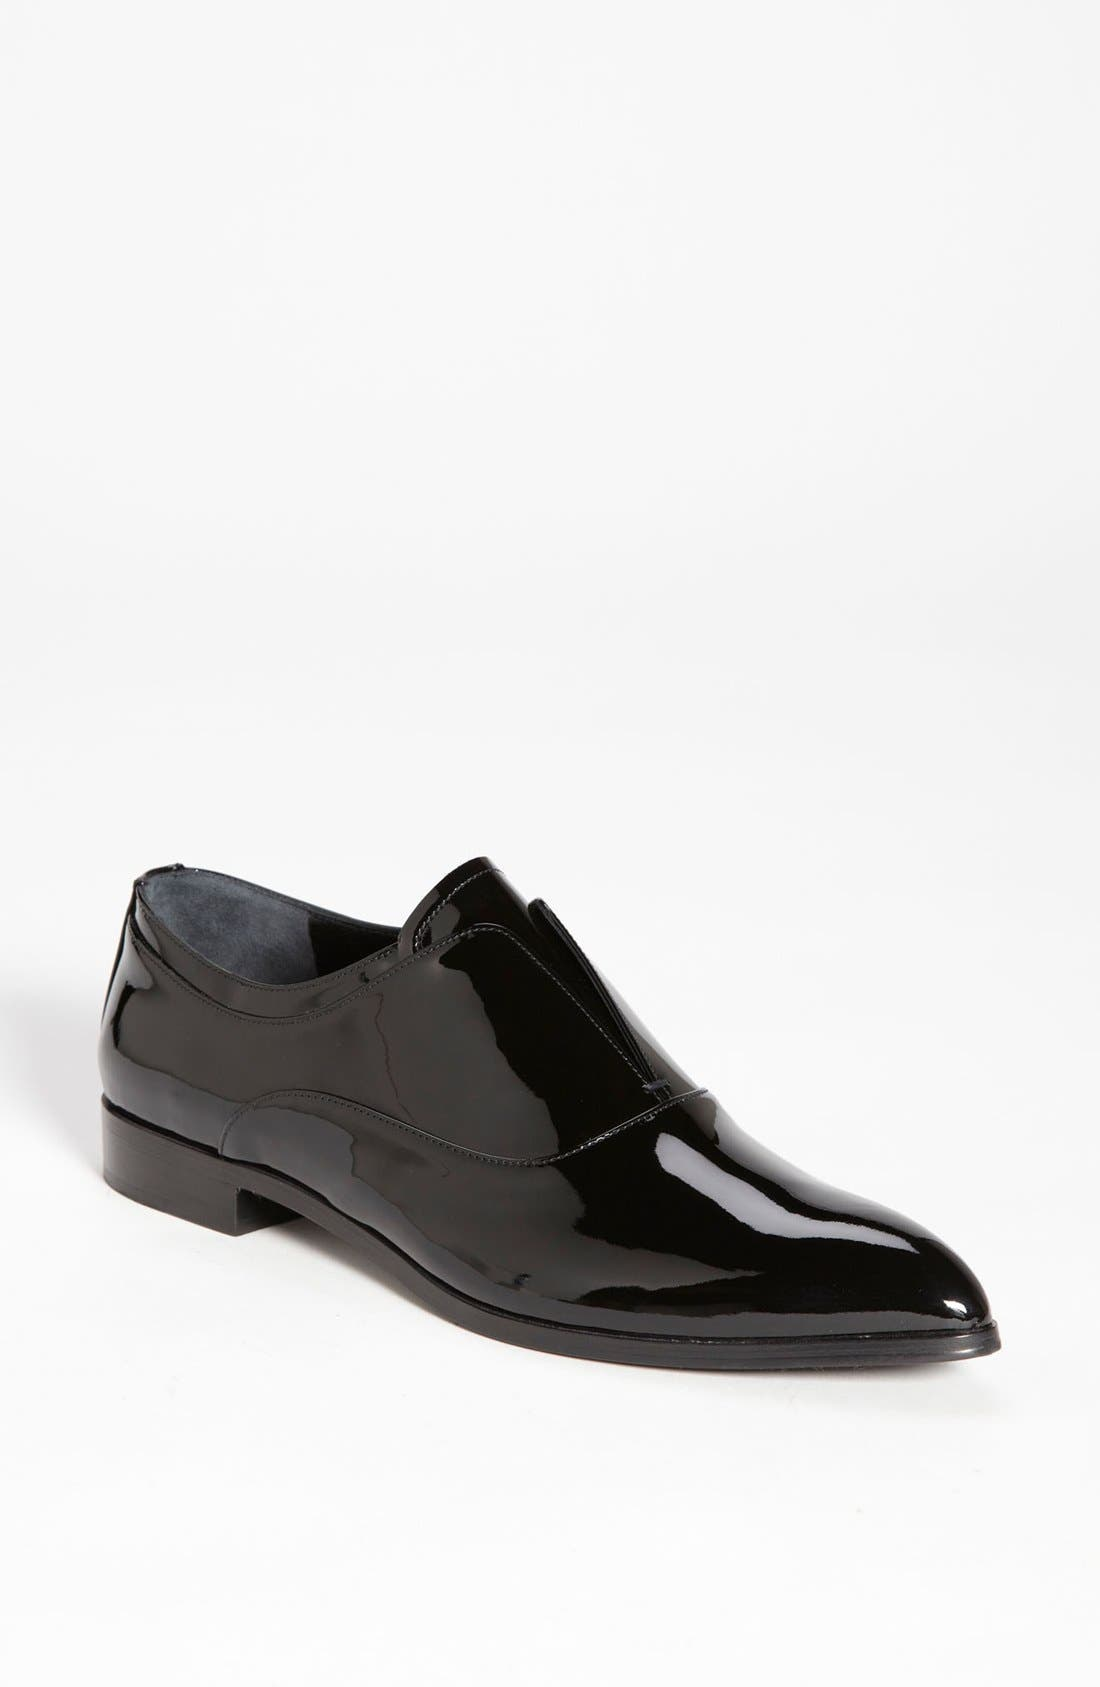 Alternate Image 1 Selected - Prada Laceless Pointy Toe Oxford